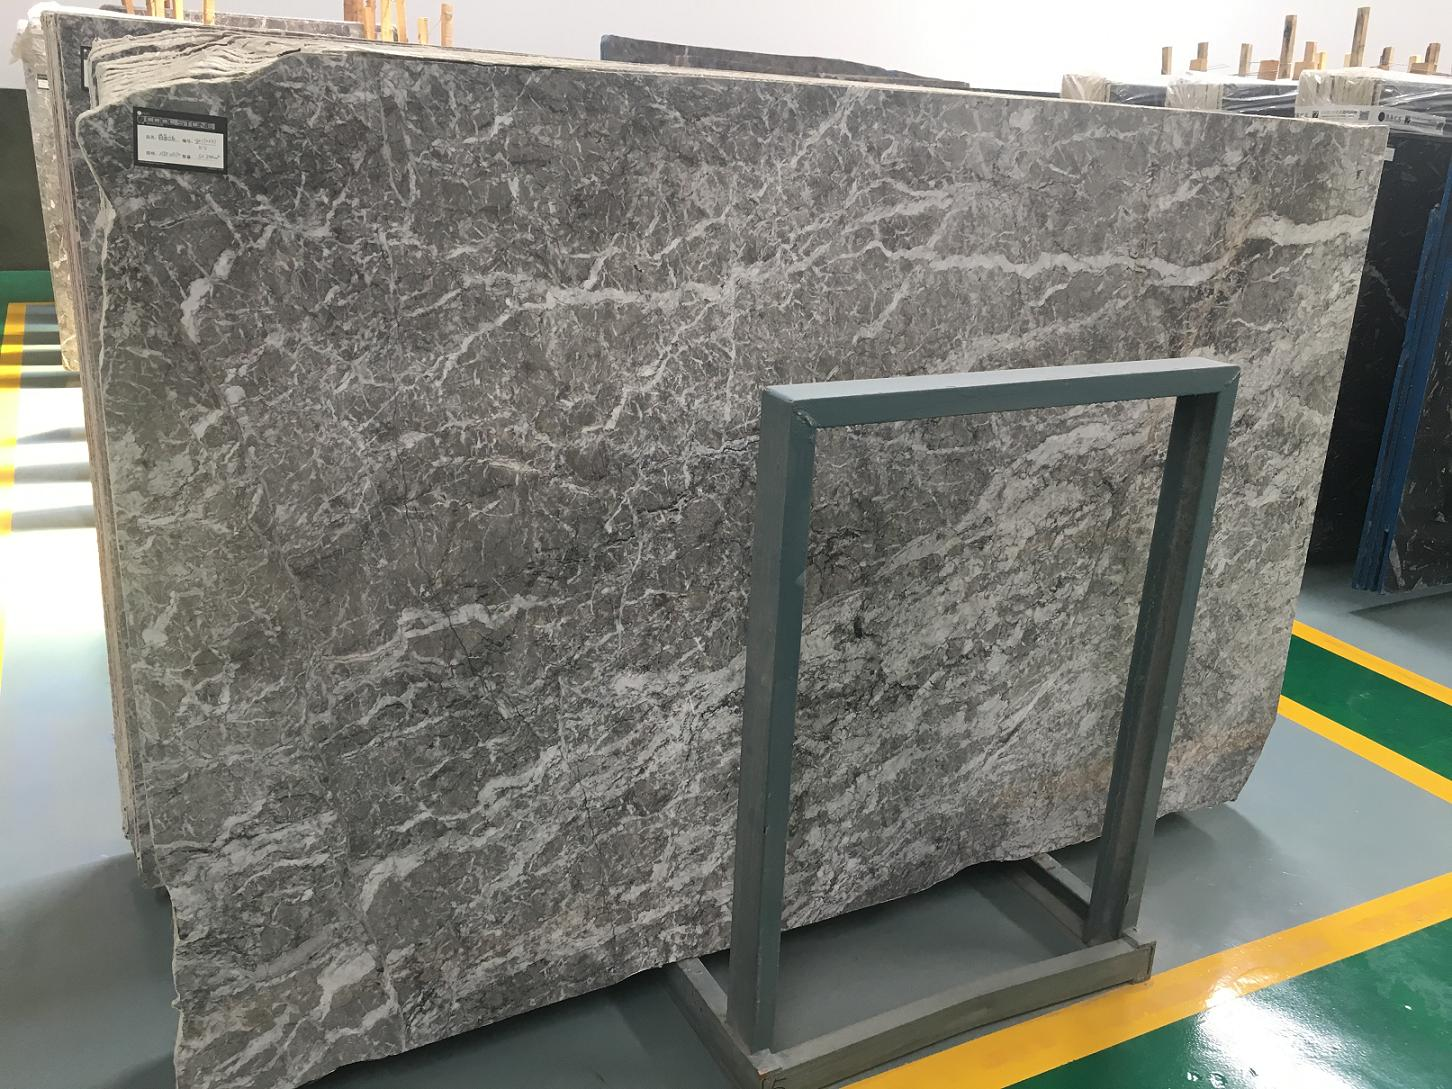 Tafrry Gray Marble Tiles & Slabs Grey Polished Marble Floor Covering Tiles